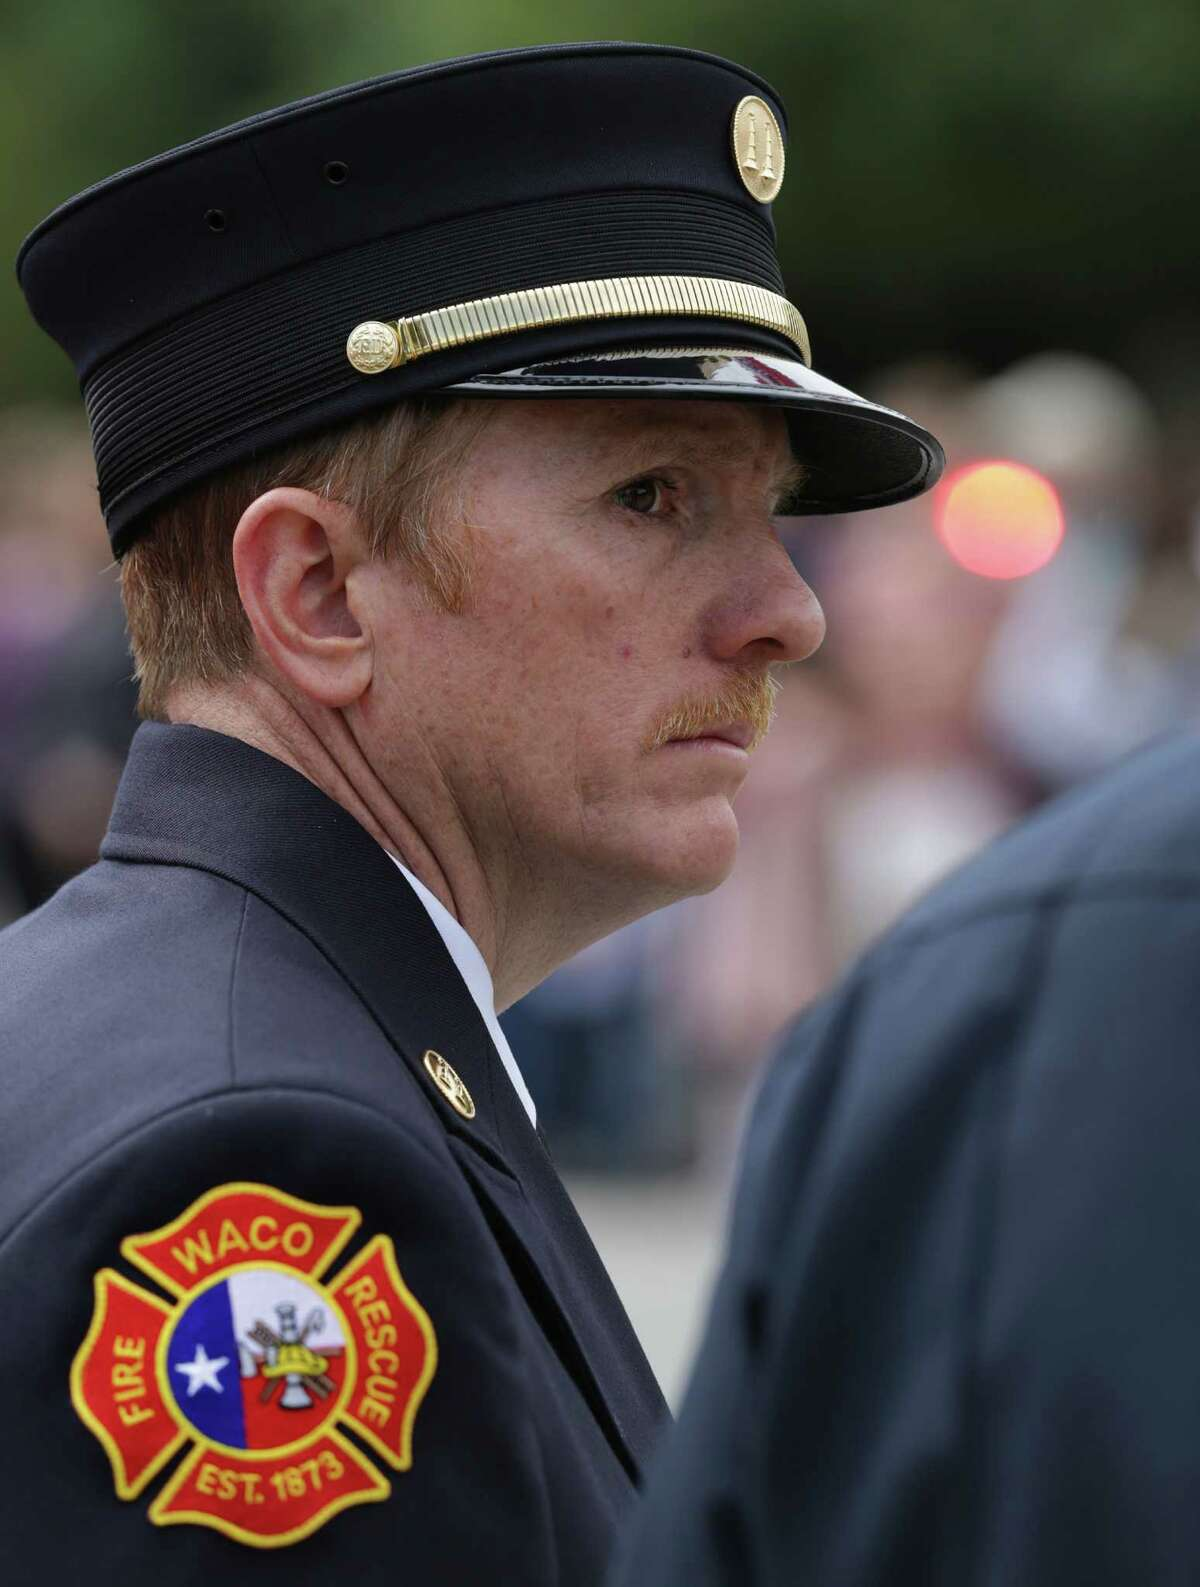 Robert Beechner of the Waco Fire Department watches as the procession goes by on Thursday April 25, 2013 at the Ferrell Center at Baylor University, where President Obama is scheduled to speak, honoring the first responders that were killed in the blast in West, TX.